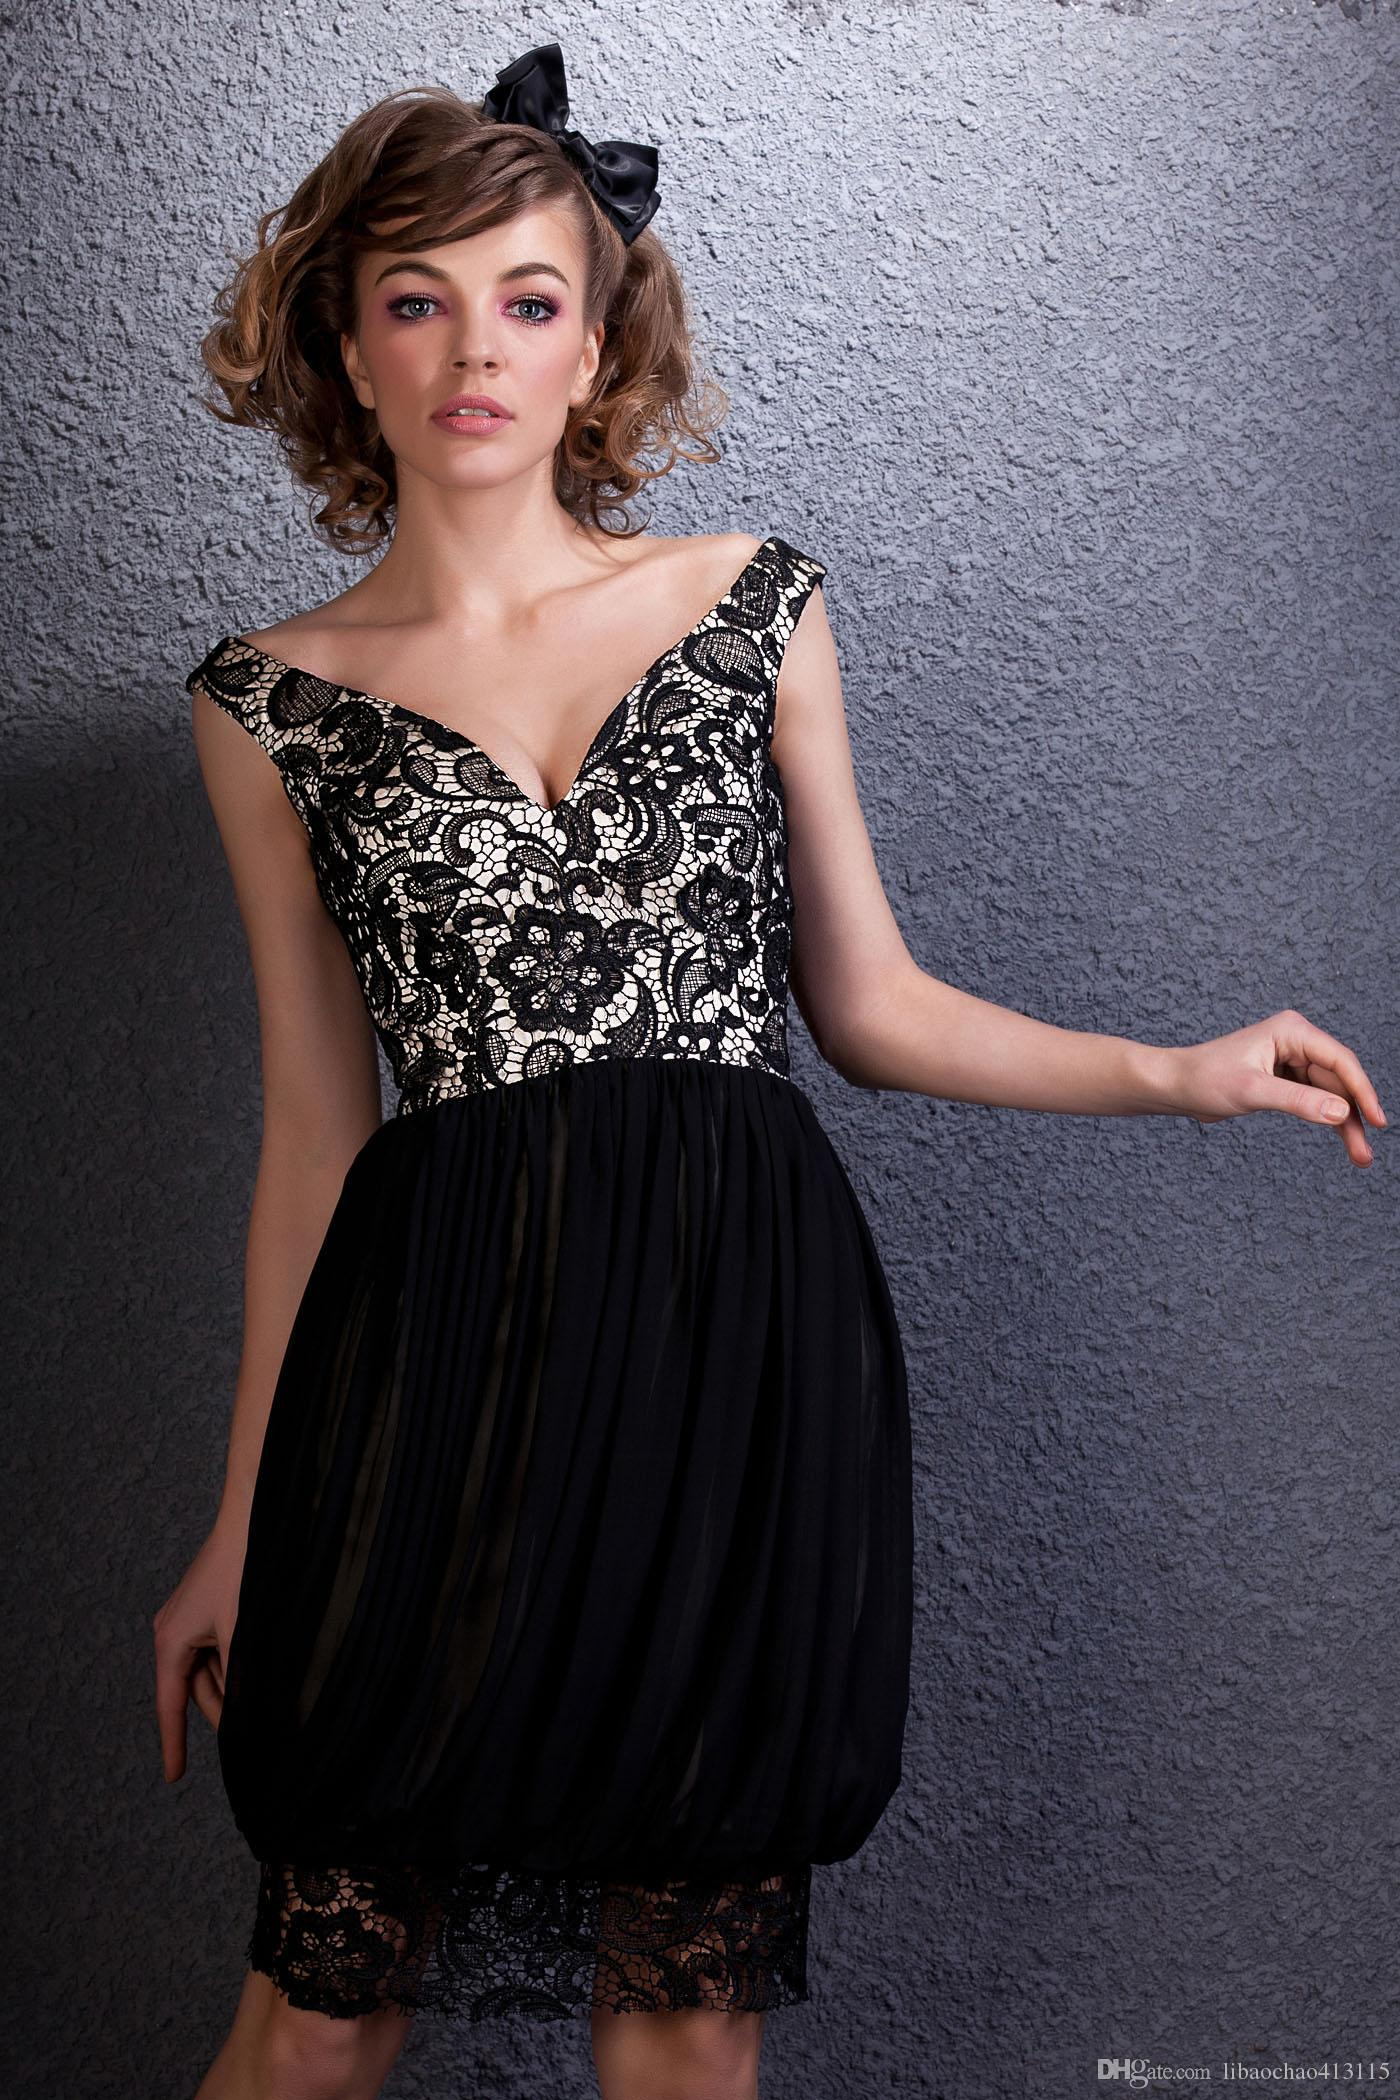 cb48f34700d6 New Designer A Line Fashionable Off Shoulder Black Lace Homecoming Dress  Popular Bridesmaid Evening Dress Bridal Party Dress Prom Gown Work Christmas  Party ...